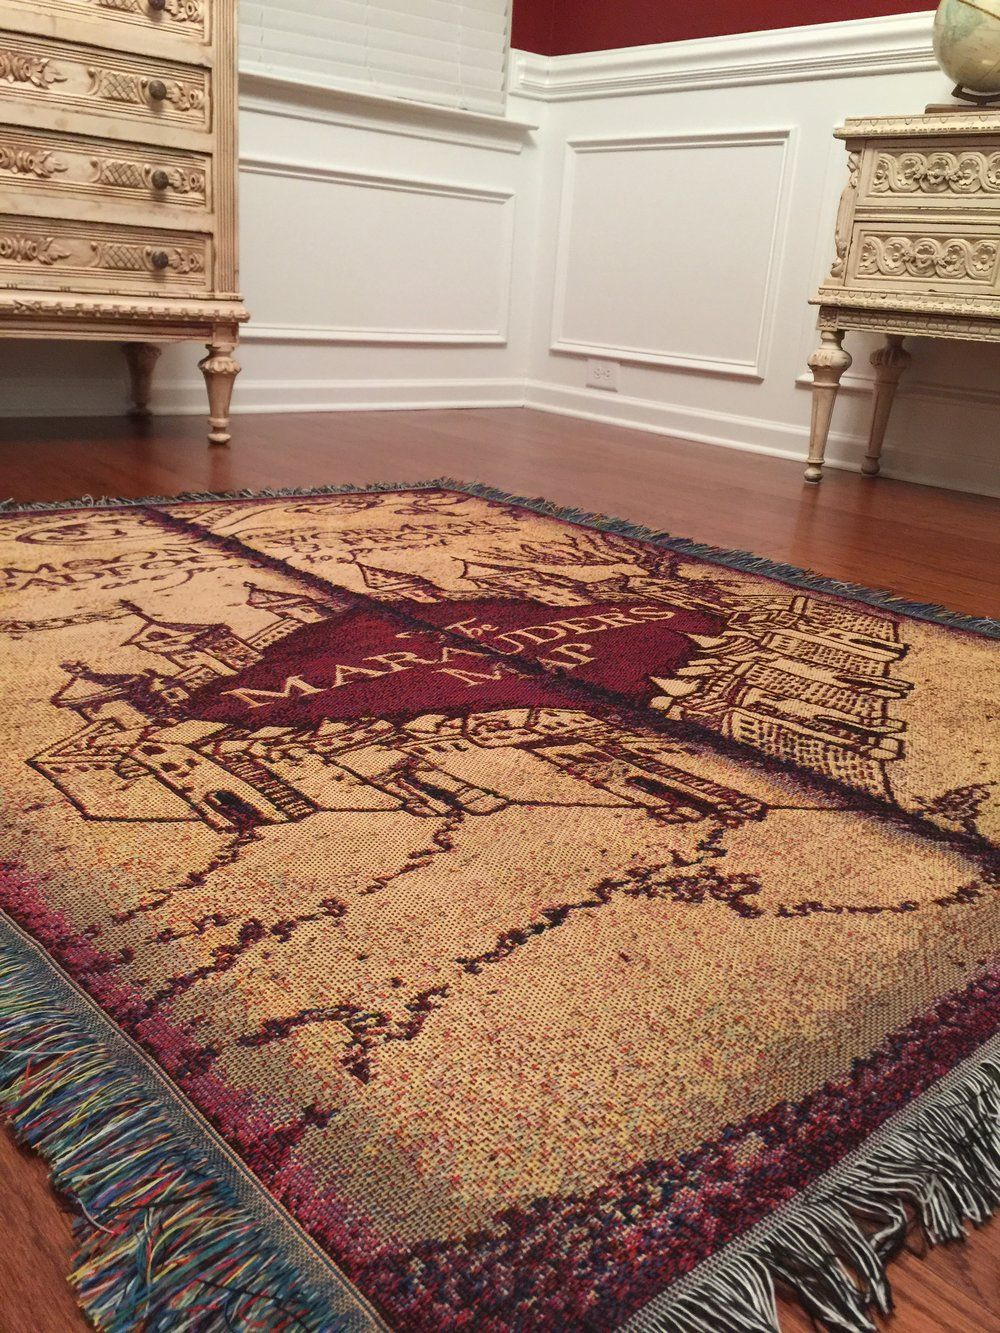 Diy Book Inspired Rug A Bookworm S Dream Reallifary With